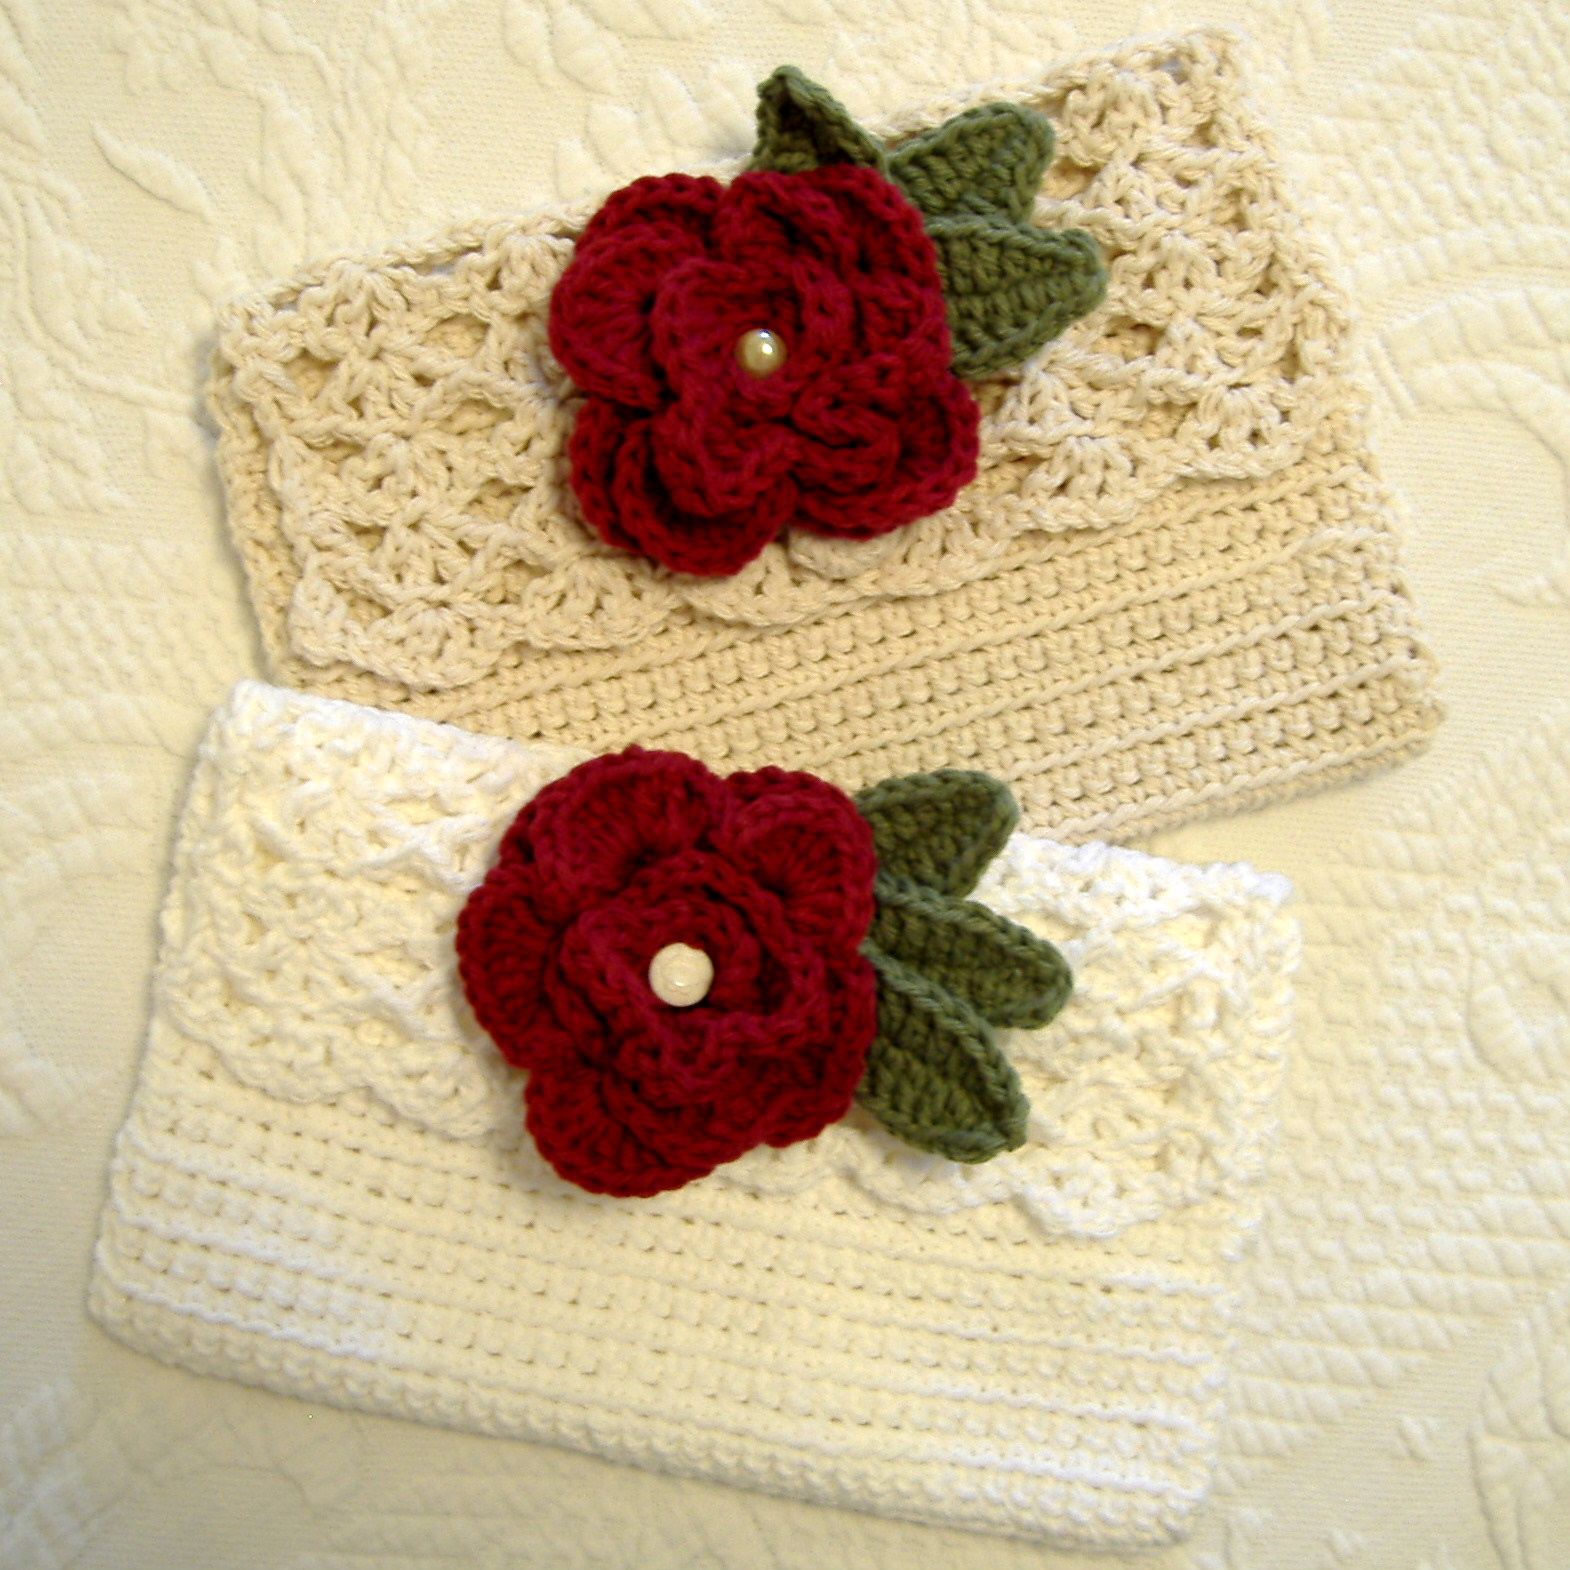 Crochet Purse : Crochet Purse Patterns